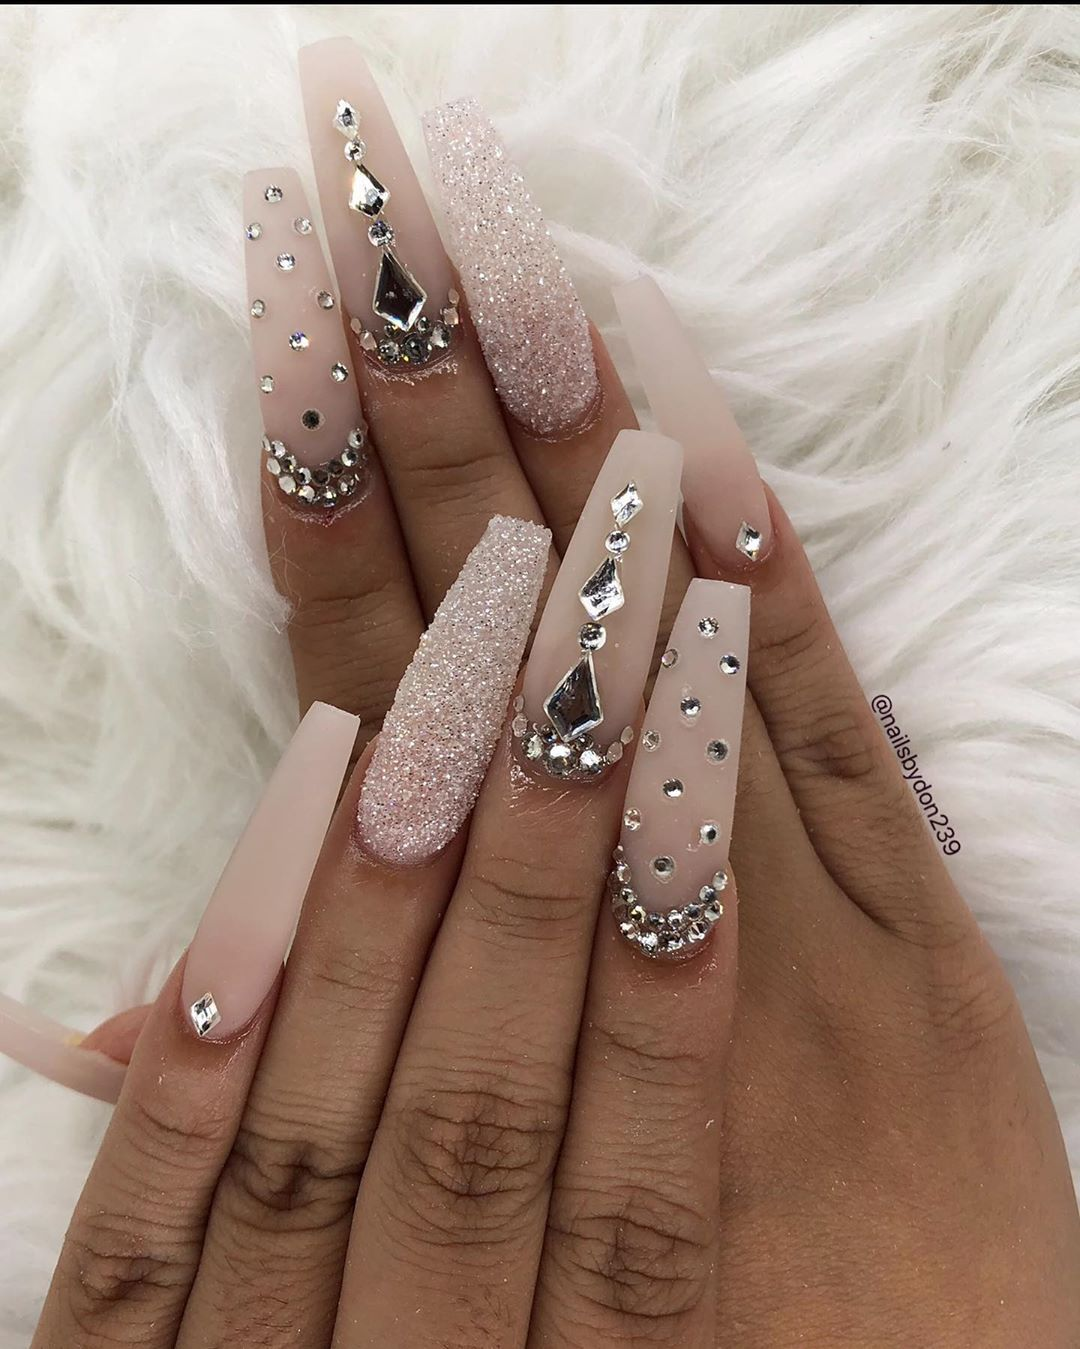 Don Pham On Instagram Let S Have Some Fun Bestie Battle Who You Pickin 1 Or 2 Please Commen Ballerina Nails Designs Coffin Nails Designs Ballerina Nails